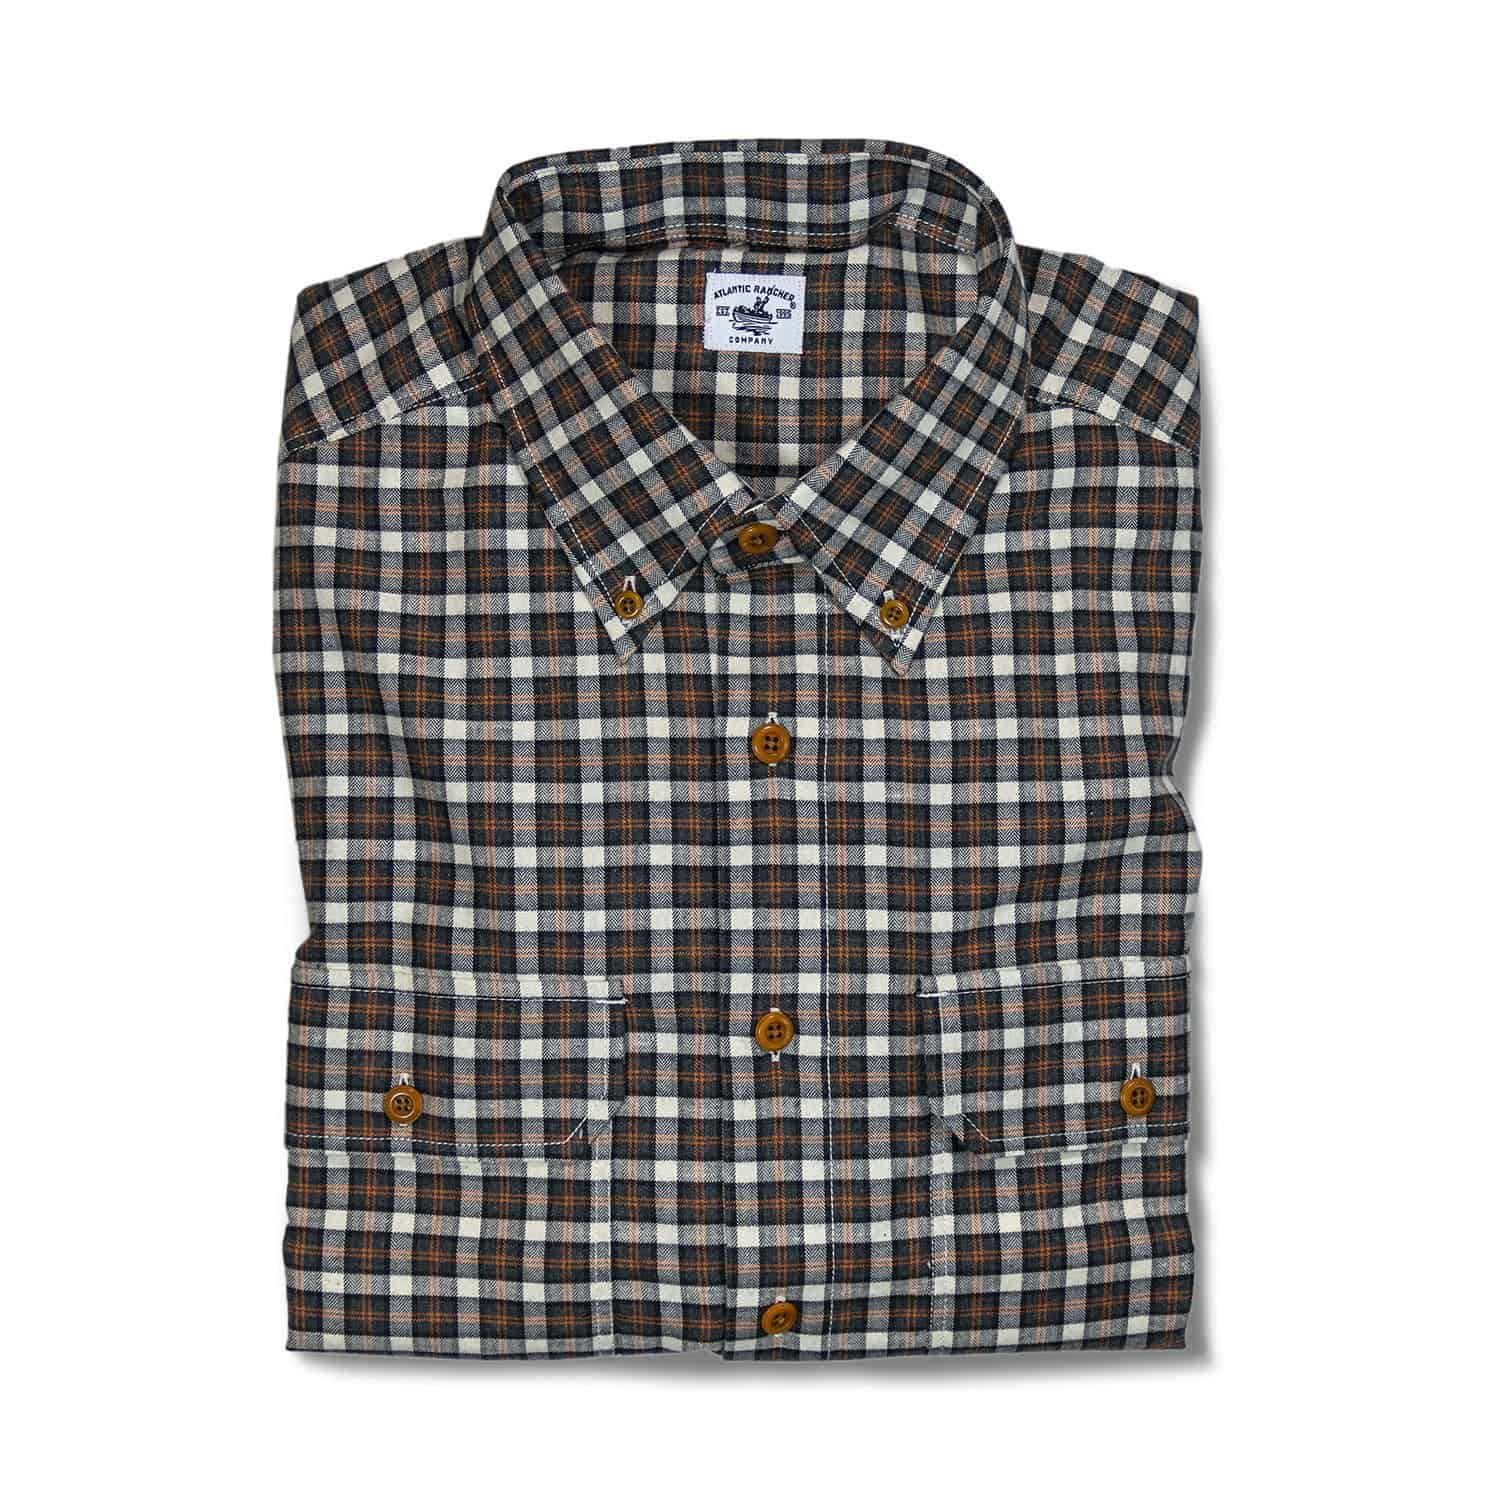 Buy The Bayman's Flannel Button-Down Collar Shirt - Orange Tick